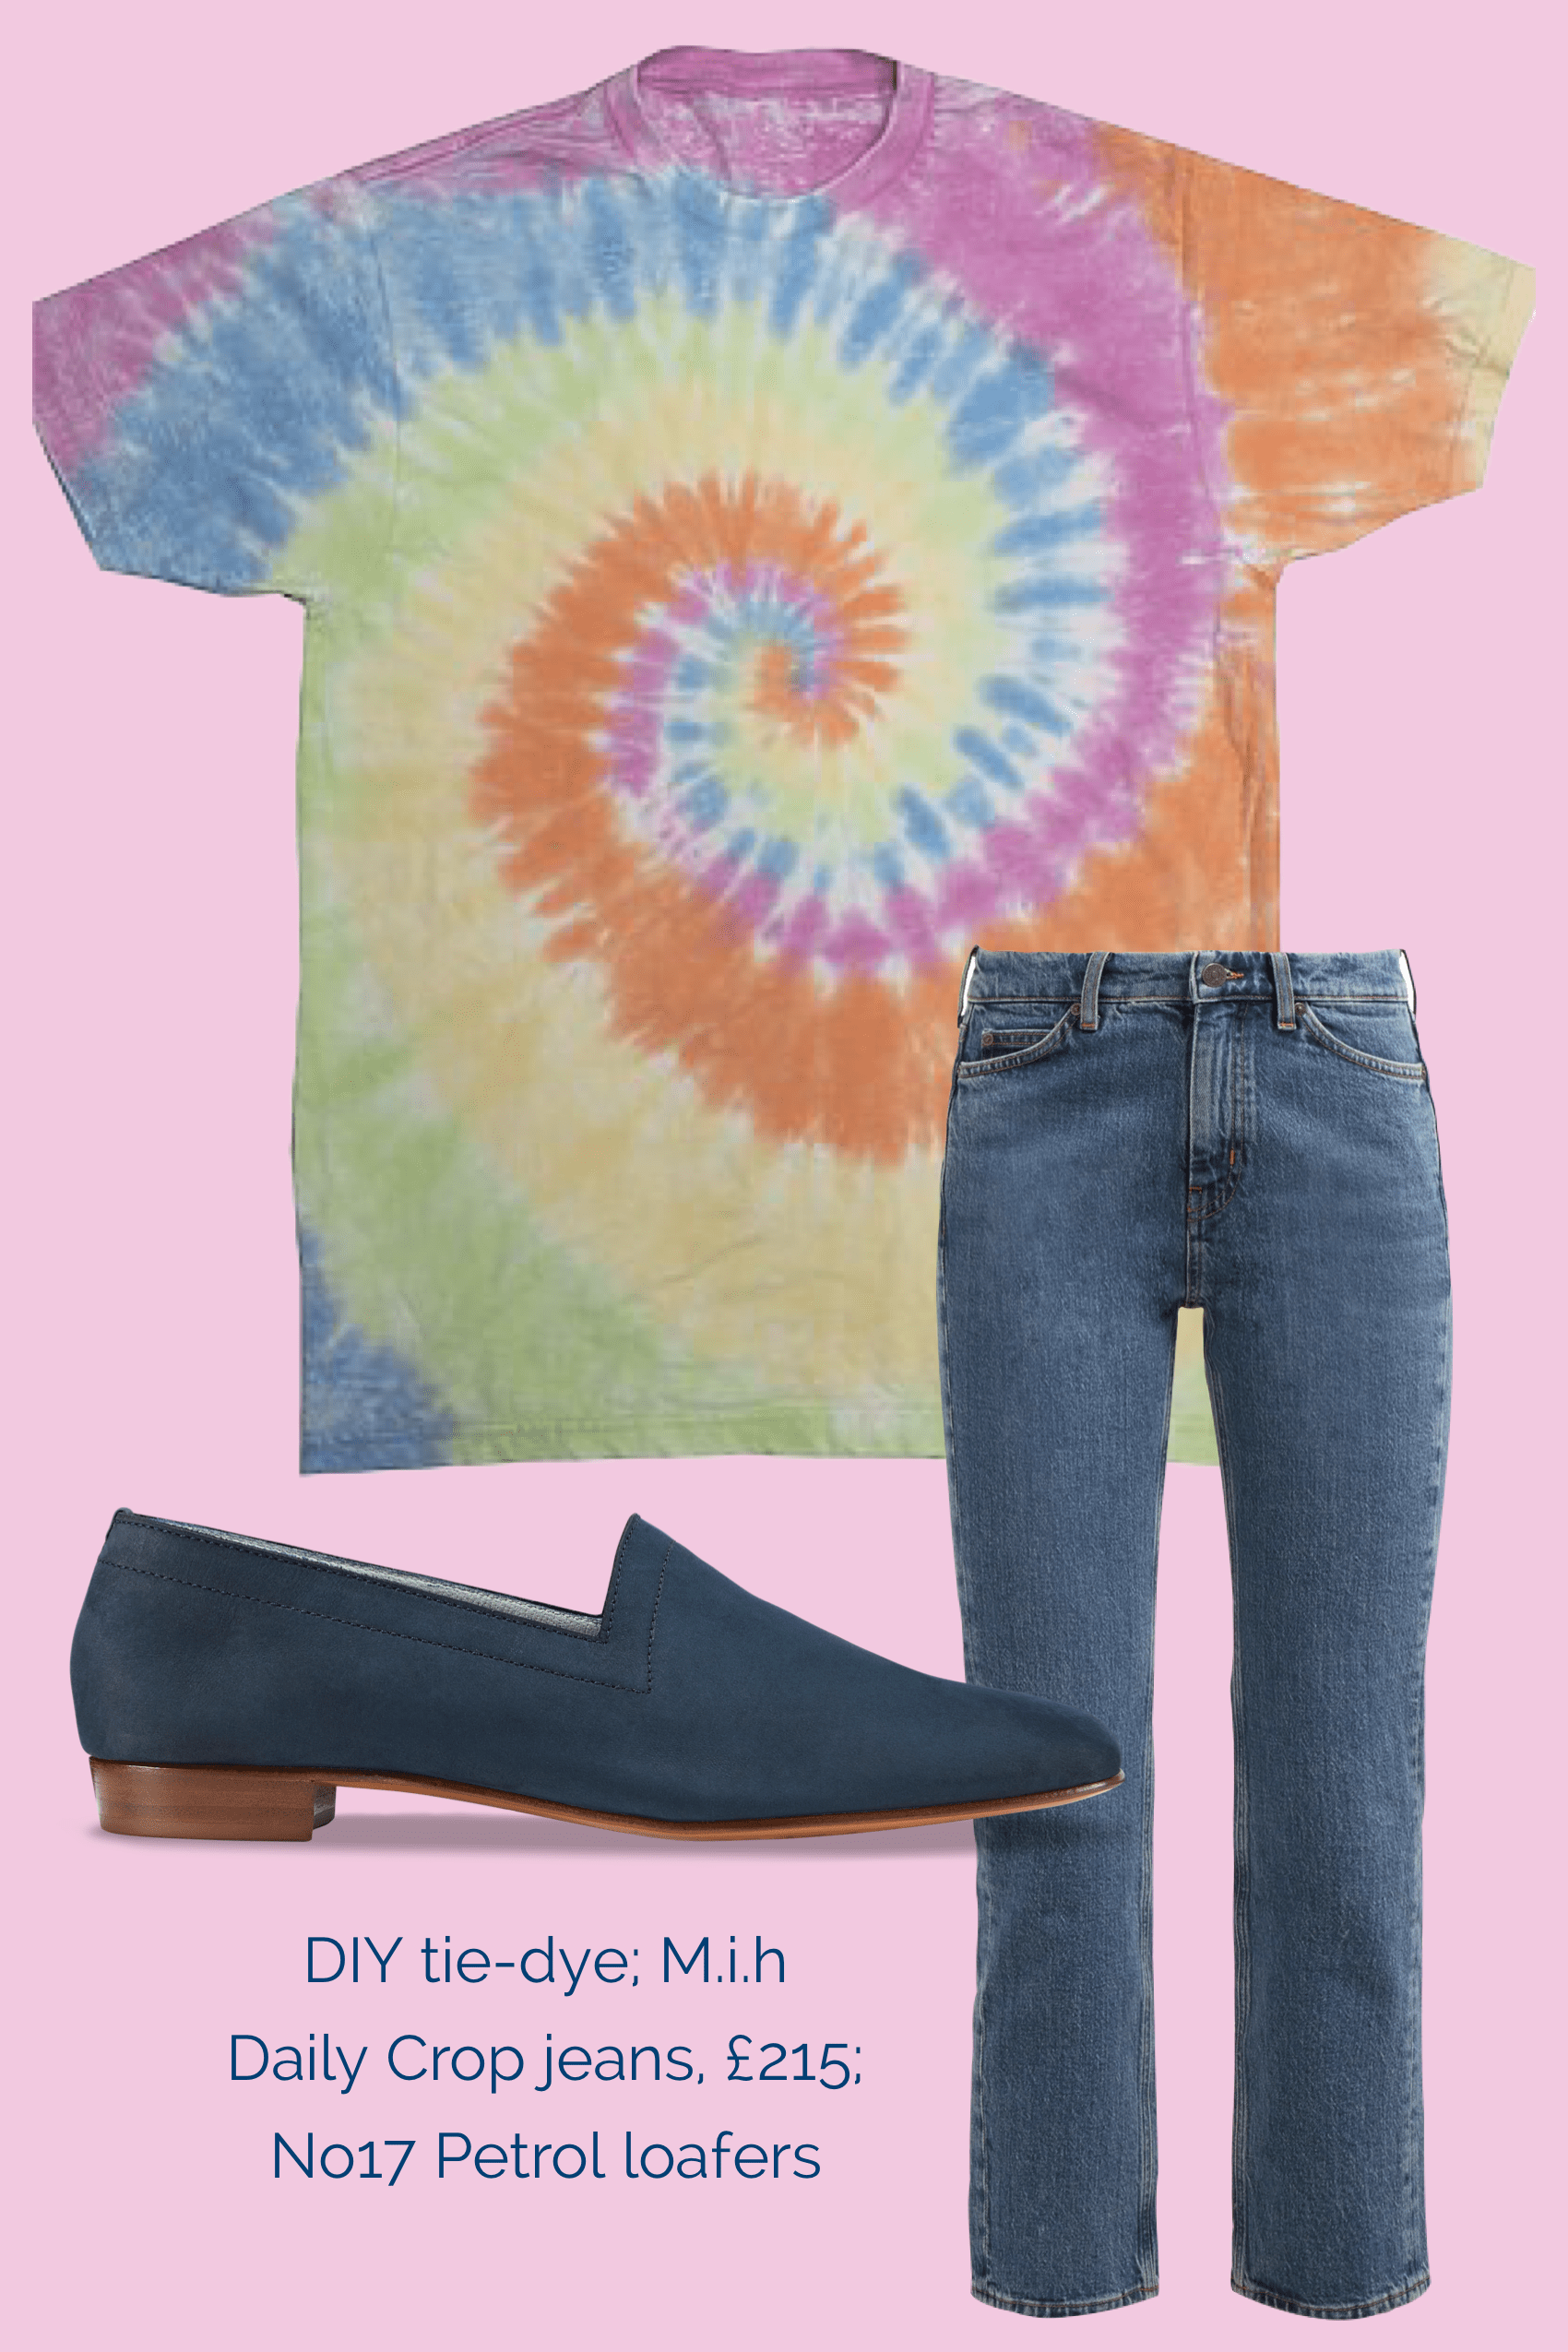 No17 Petrol loafers teamed with Mih jeans and DIY tie-dye tee